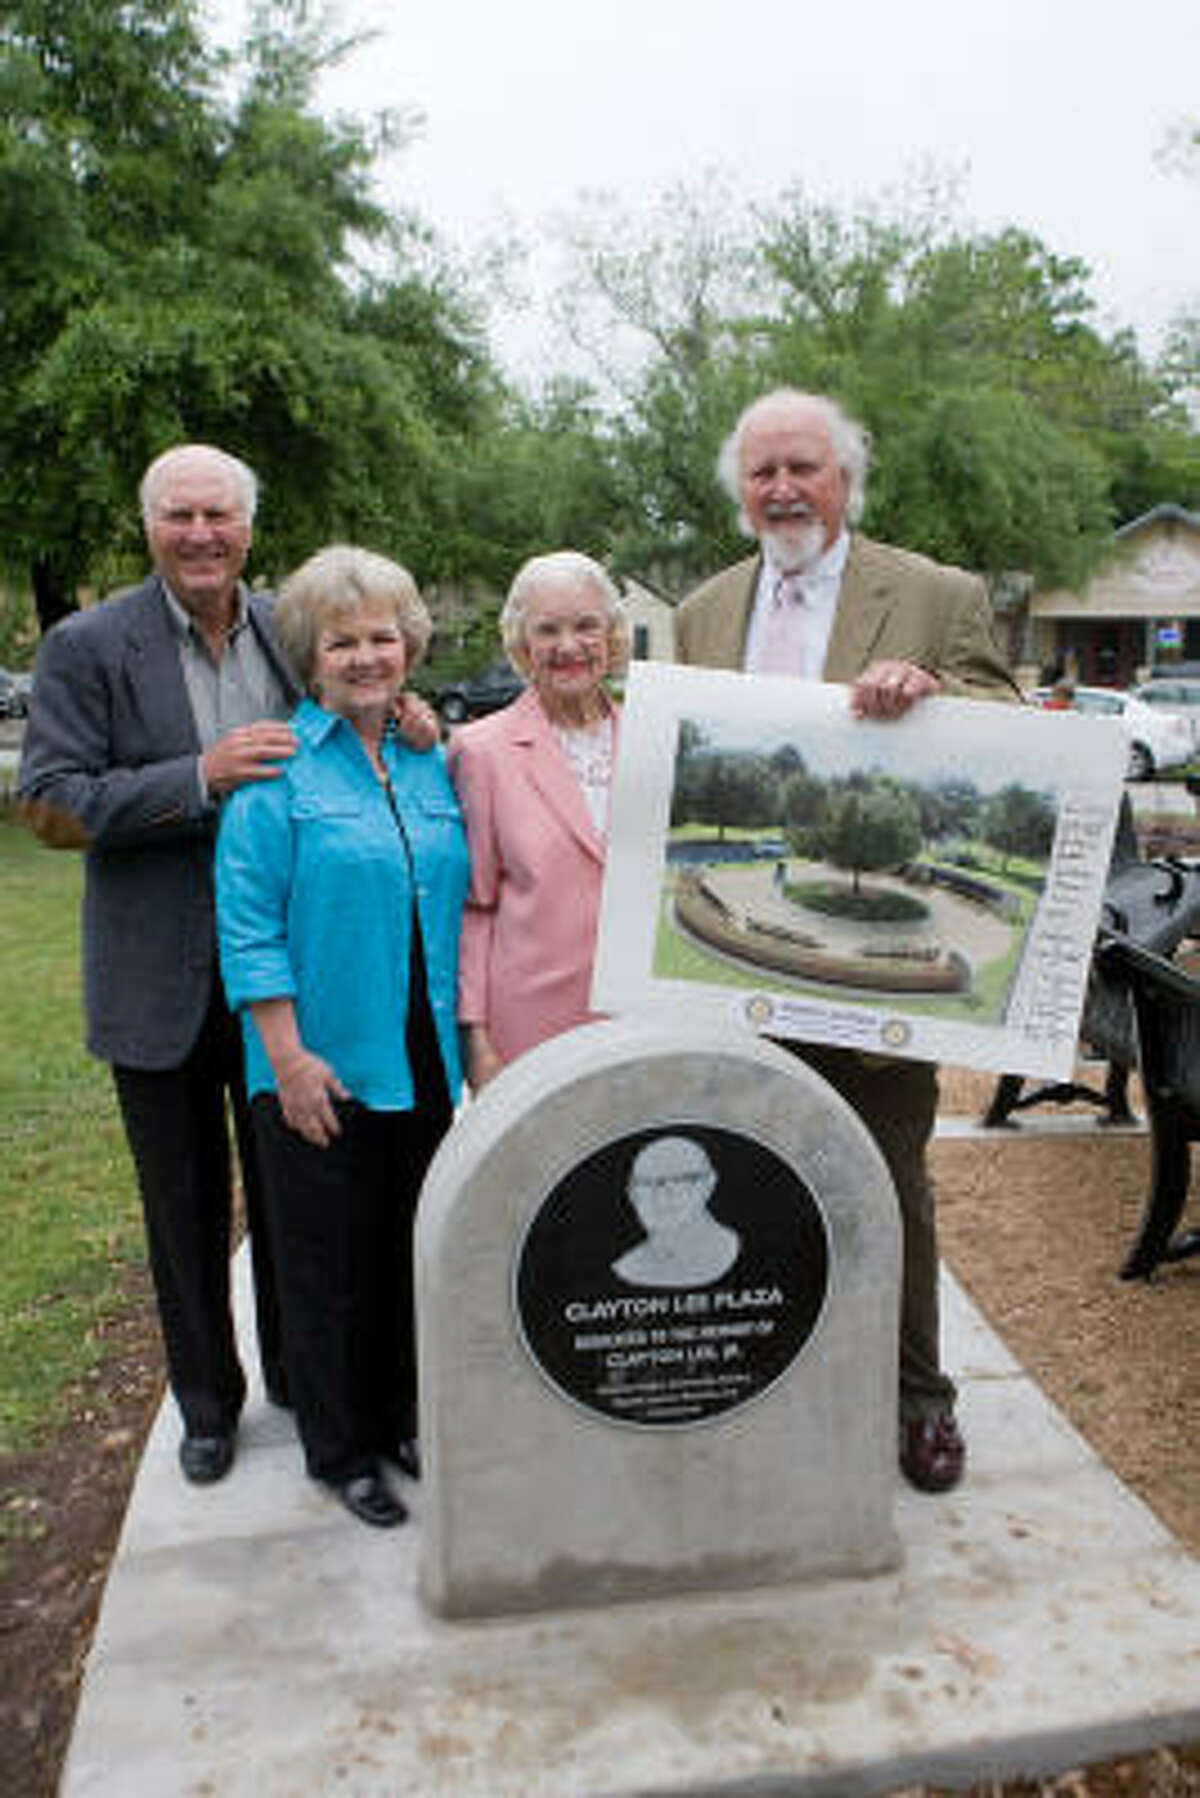 IN REMEMBRANCE: Attending the plaza dedication was the late Clayton Lee Jr.'s son, also named Clayton Jr., left, and his wife, Linda; Lee Jr.'s widow, Libby Lee, and son, Grady Lee.